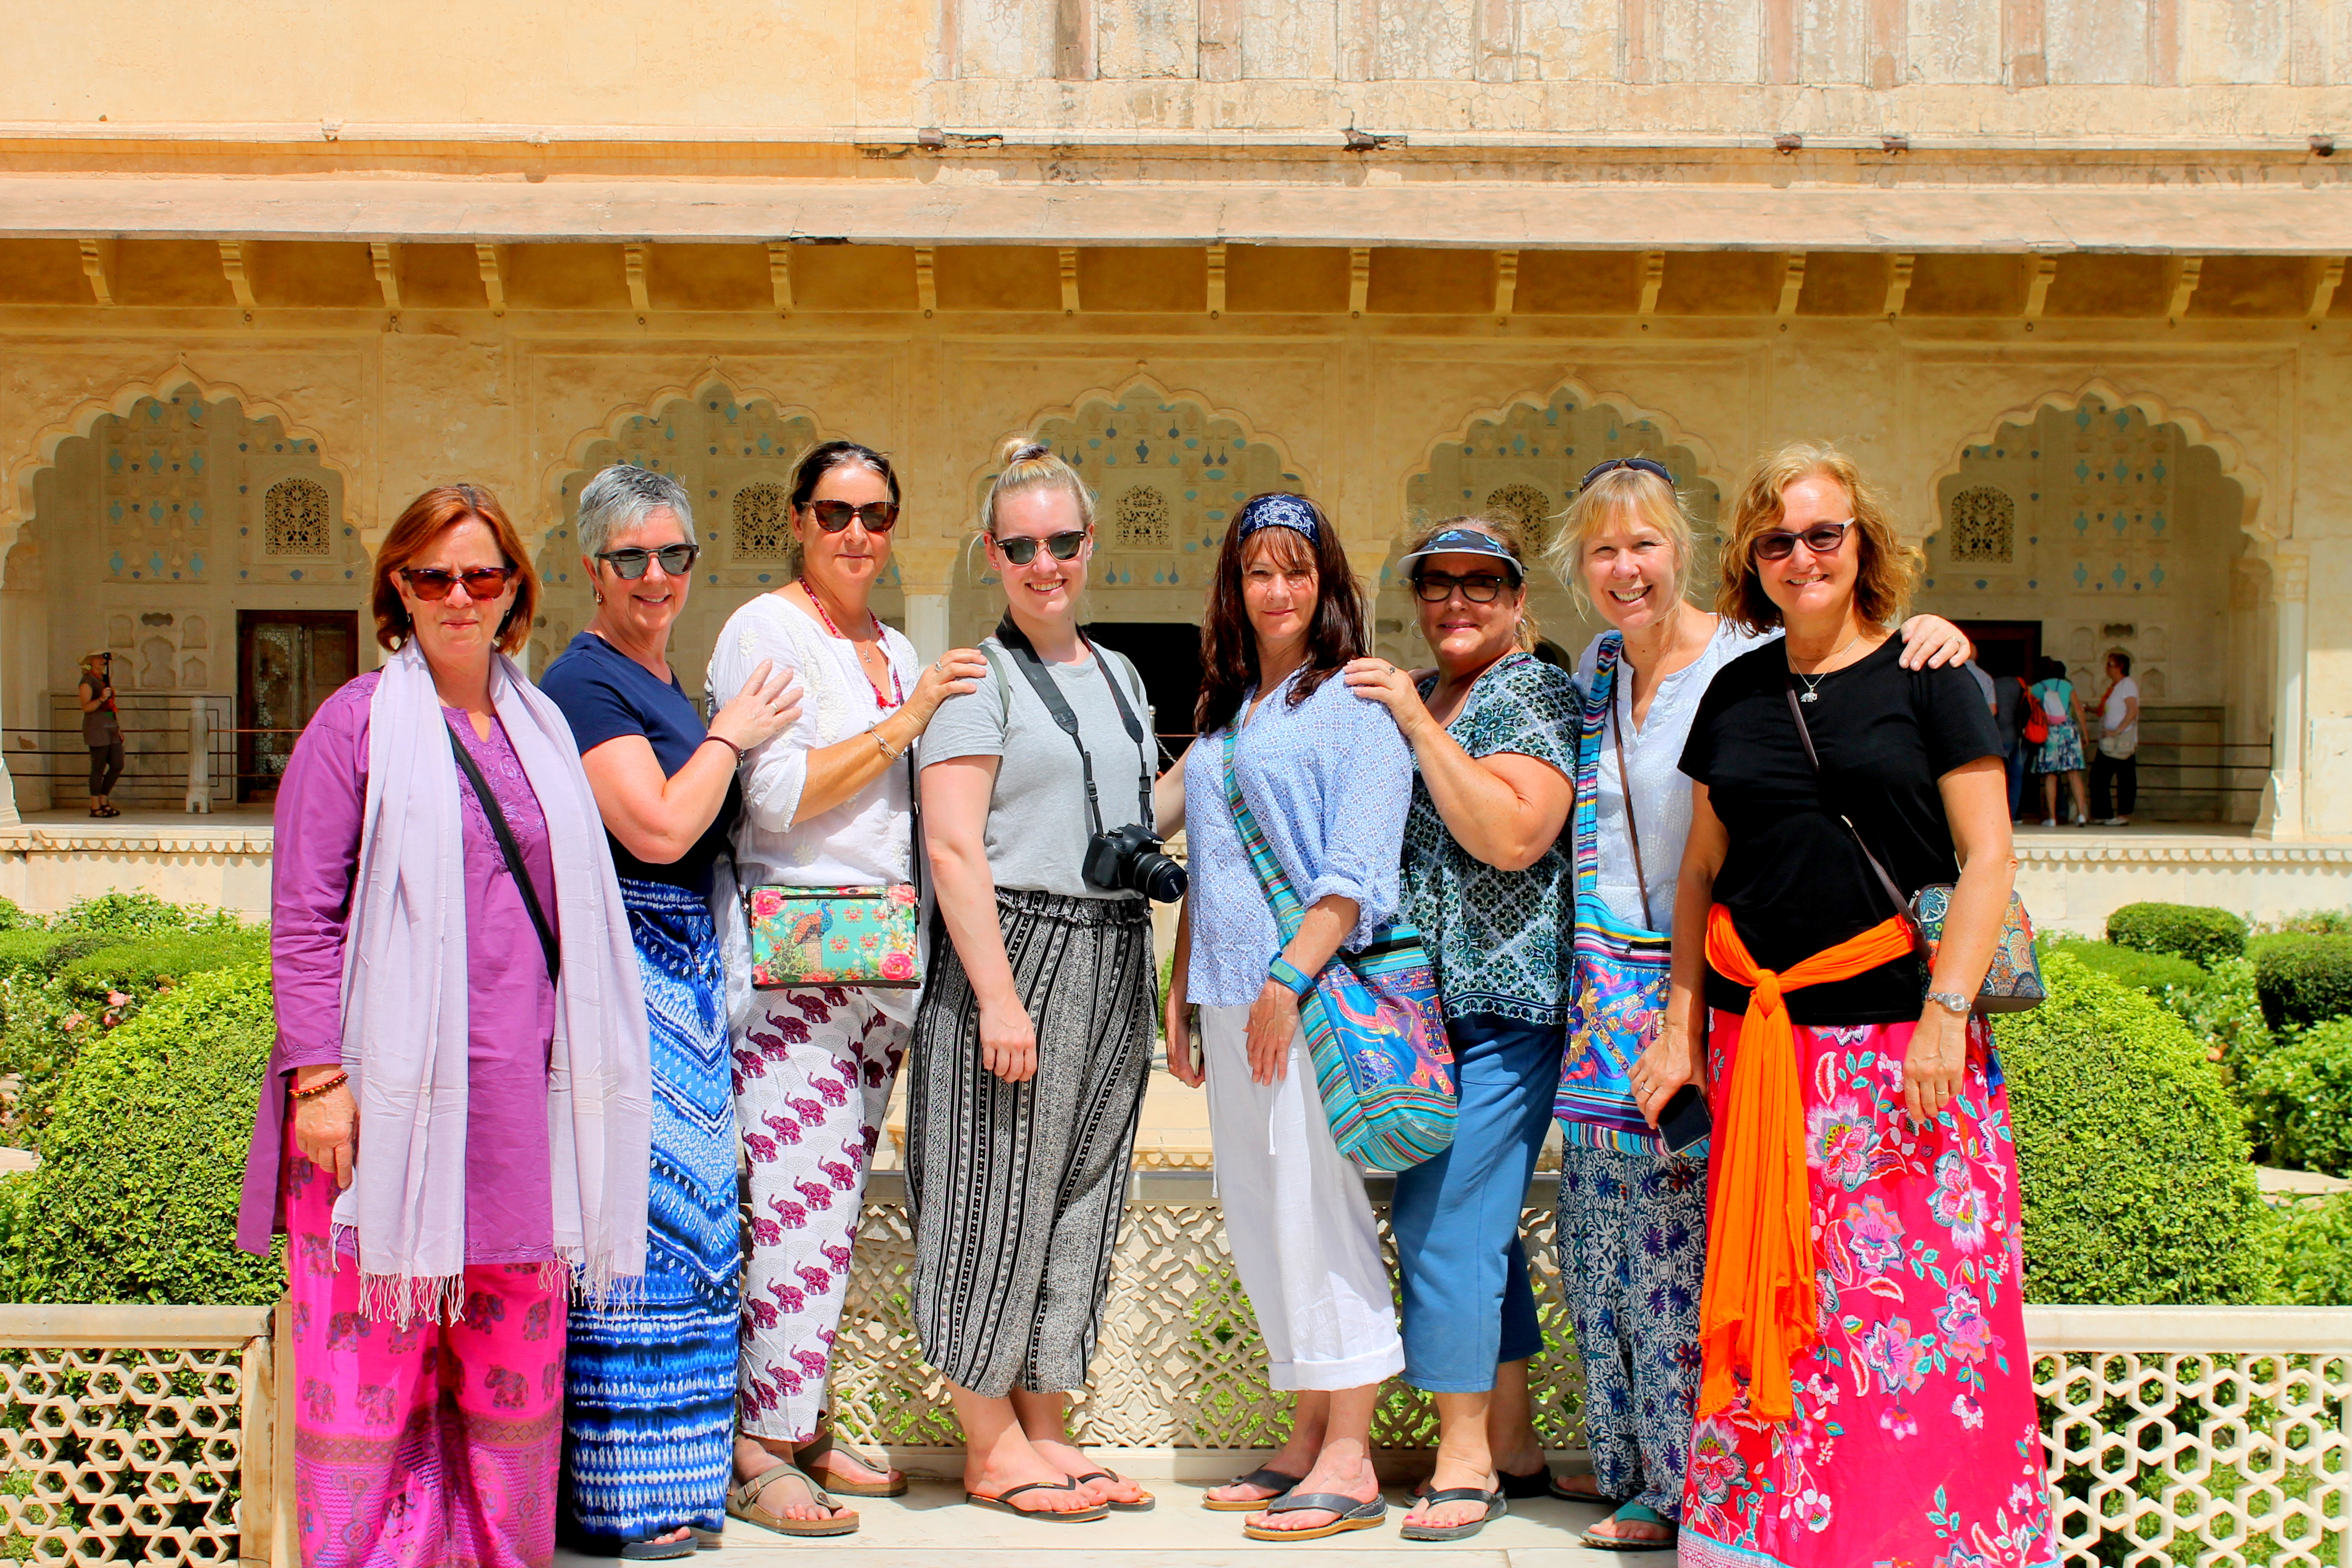 All Women's Voluntour Journey: Gill Collier's Experience In India With VolSol